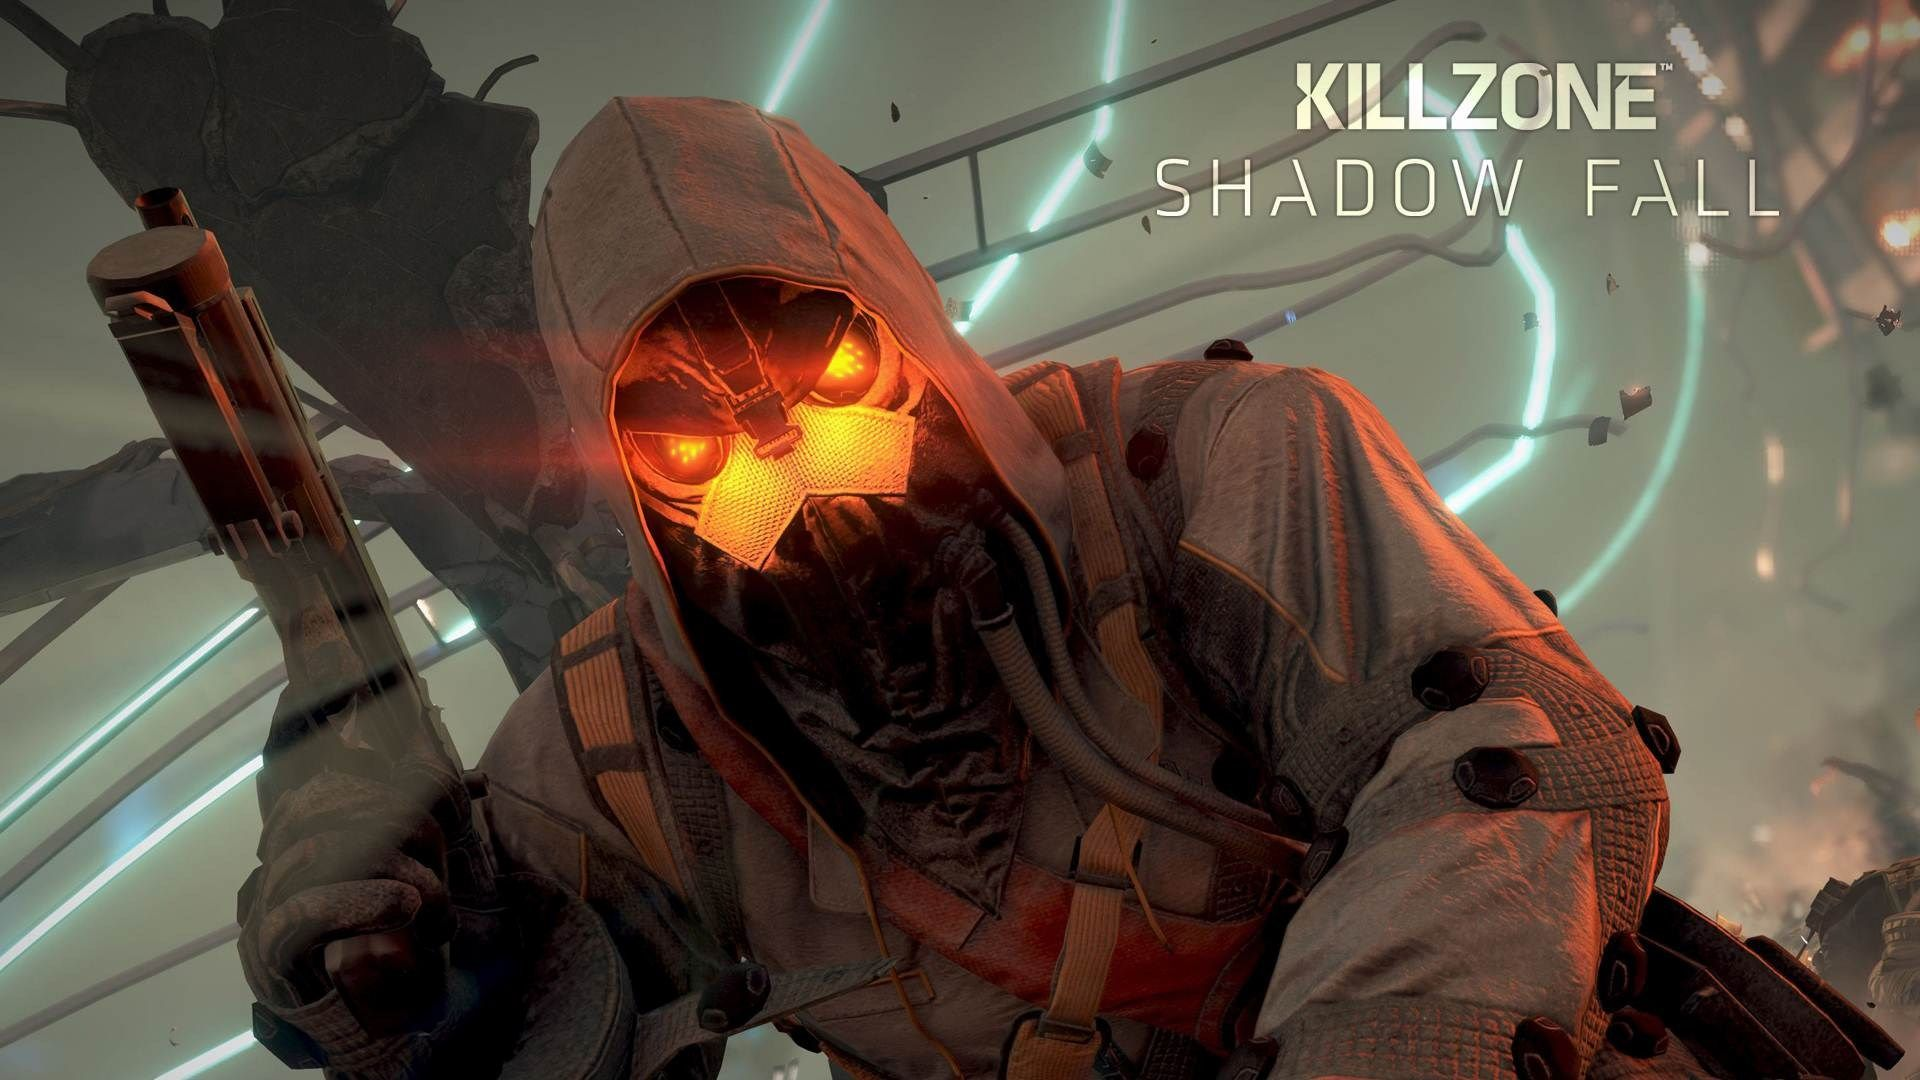 1920x1080 killzone shadow fall game wallpaper wallpapers and 1920x1080 killzone shadow fall game wallpaper voltagebd Images